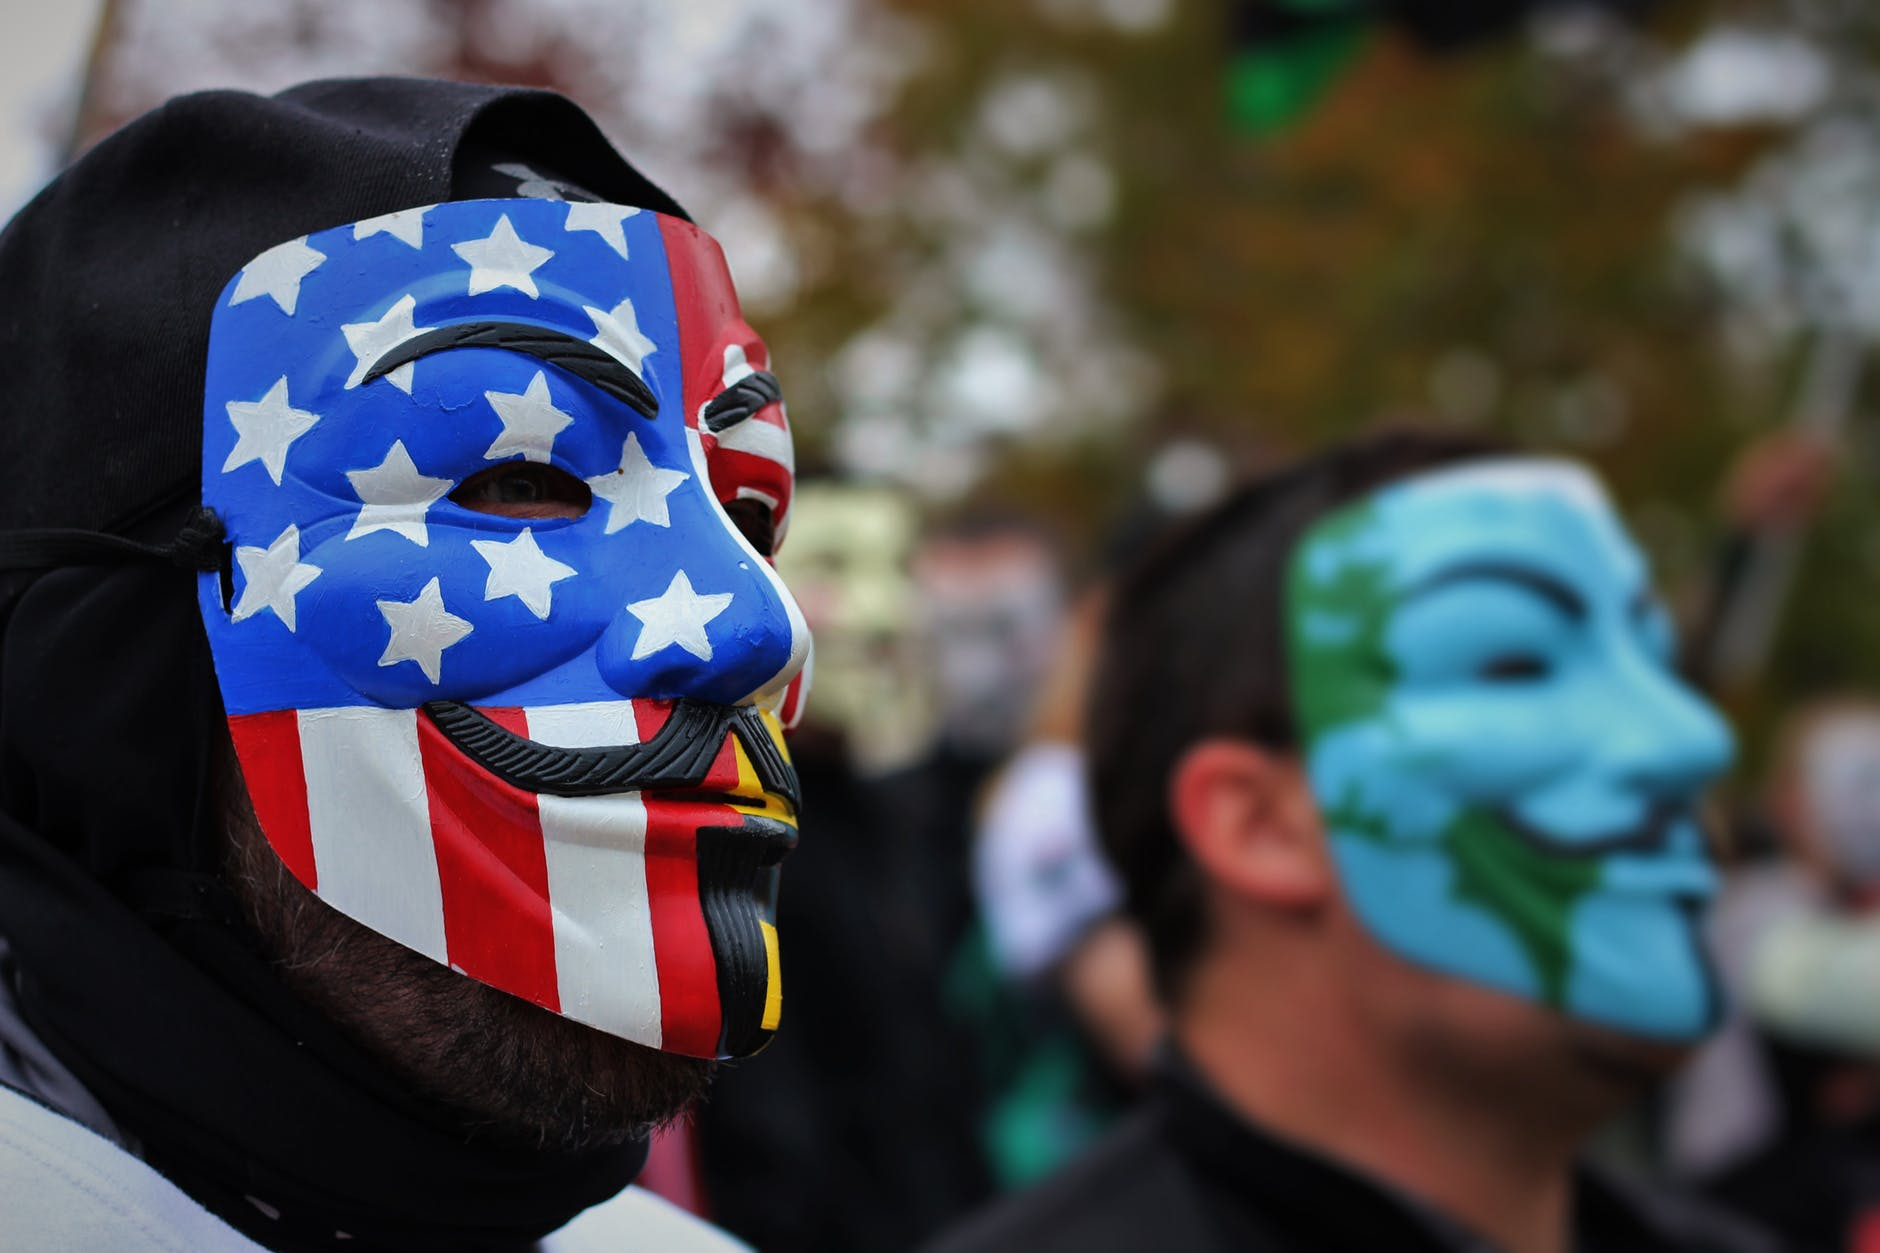 close up photo of person wearing guy fawkes mask